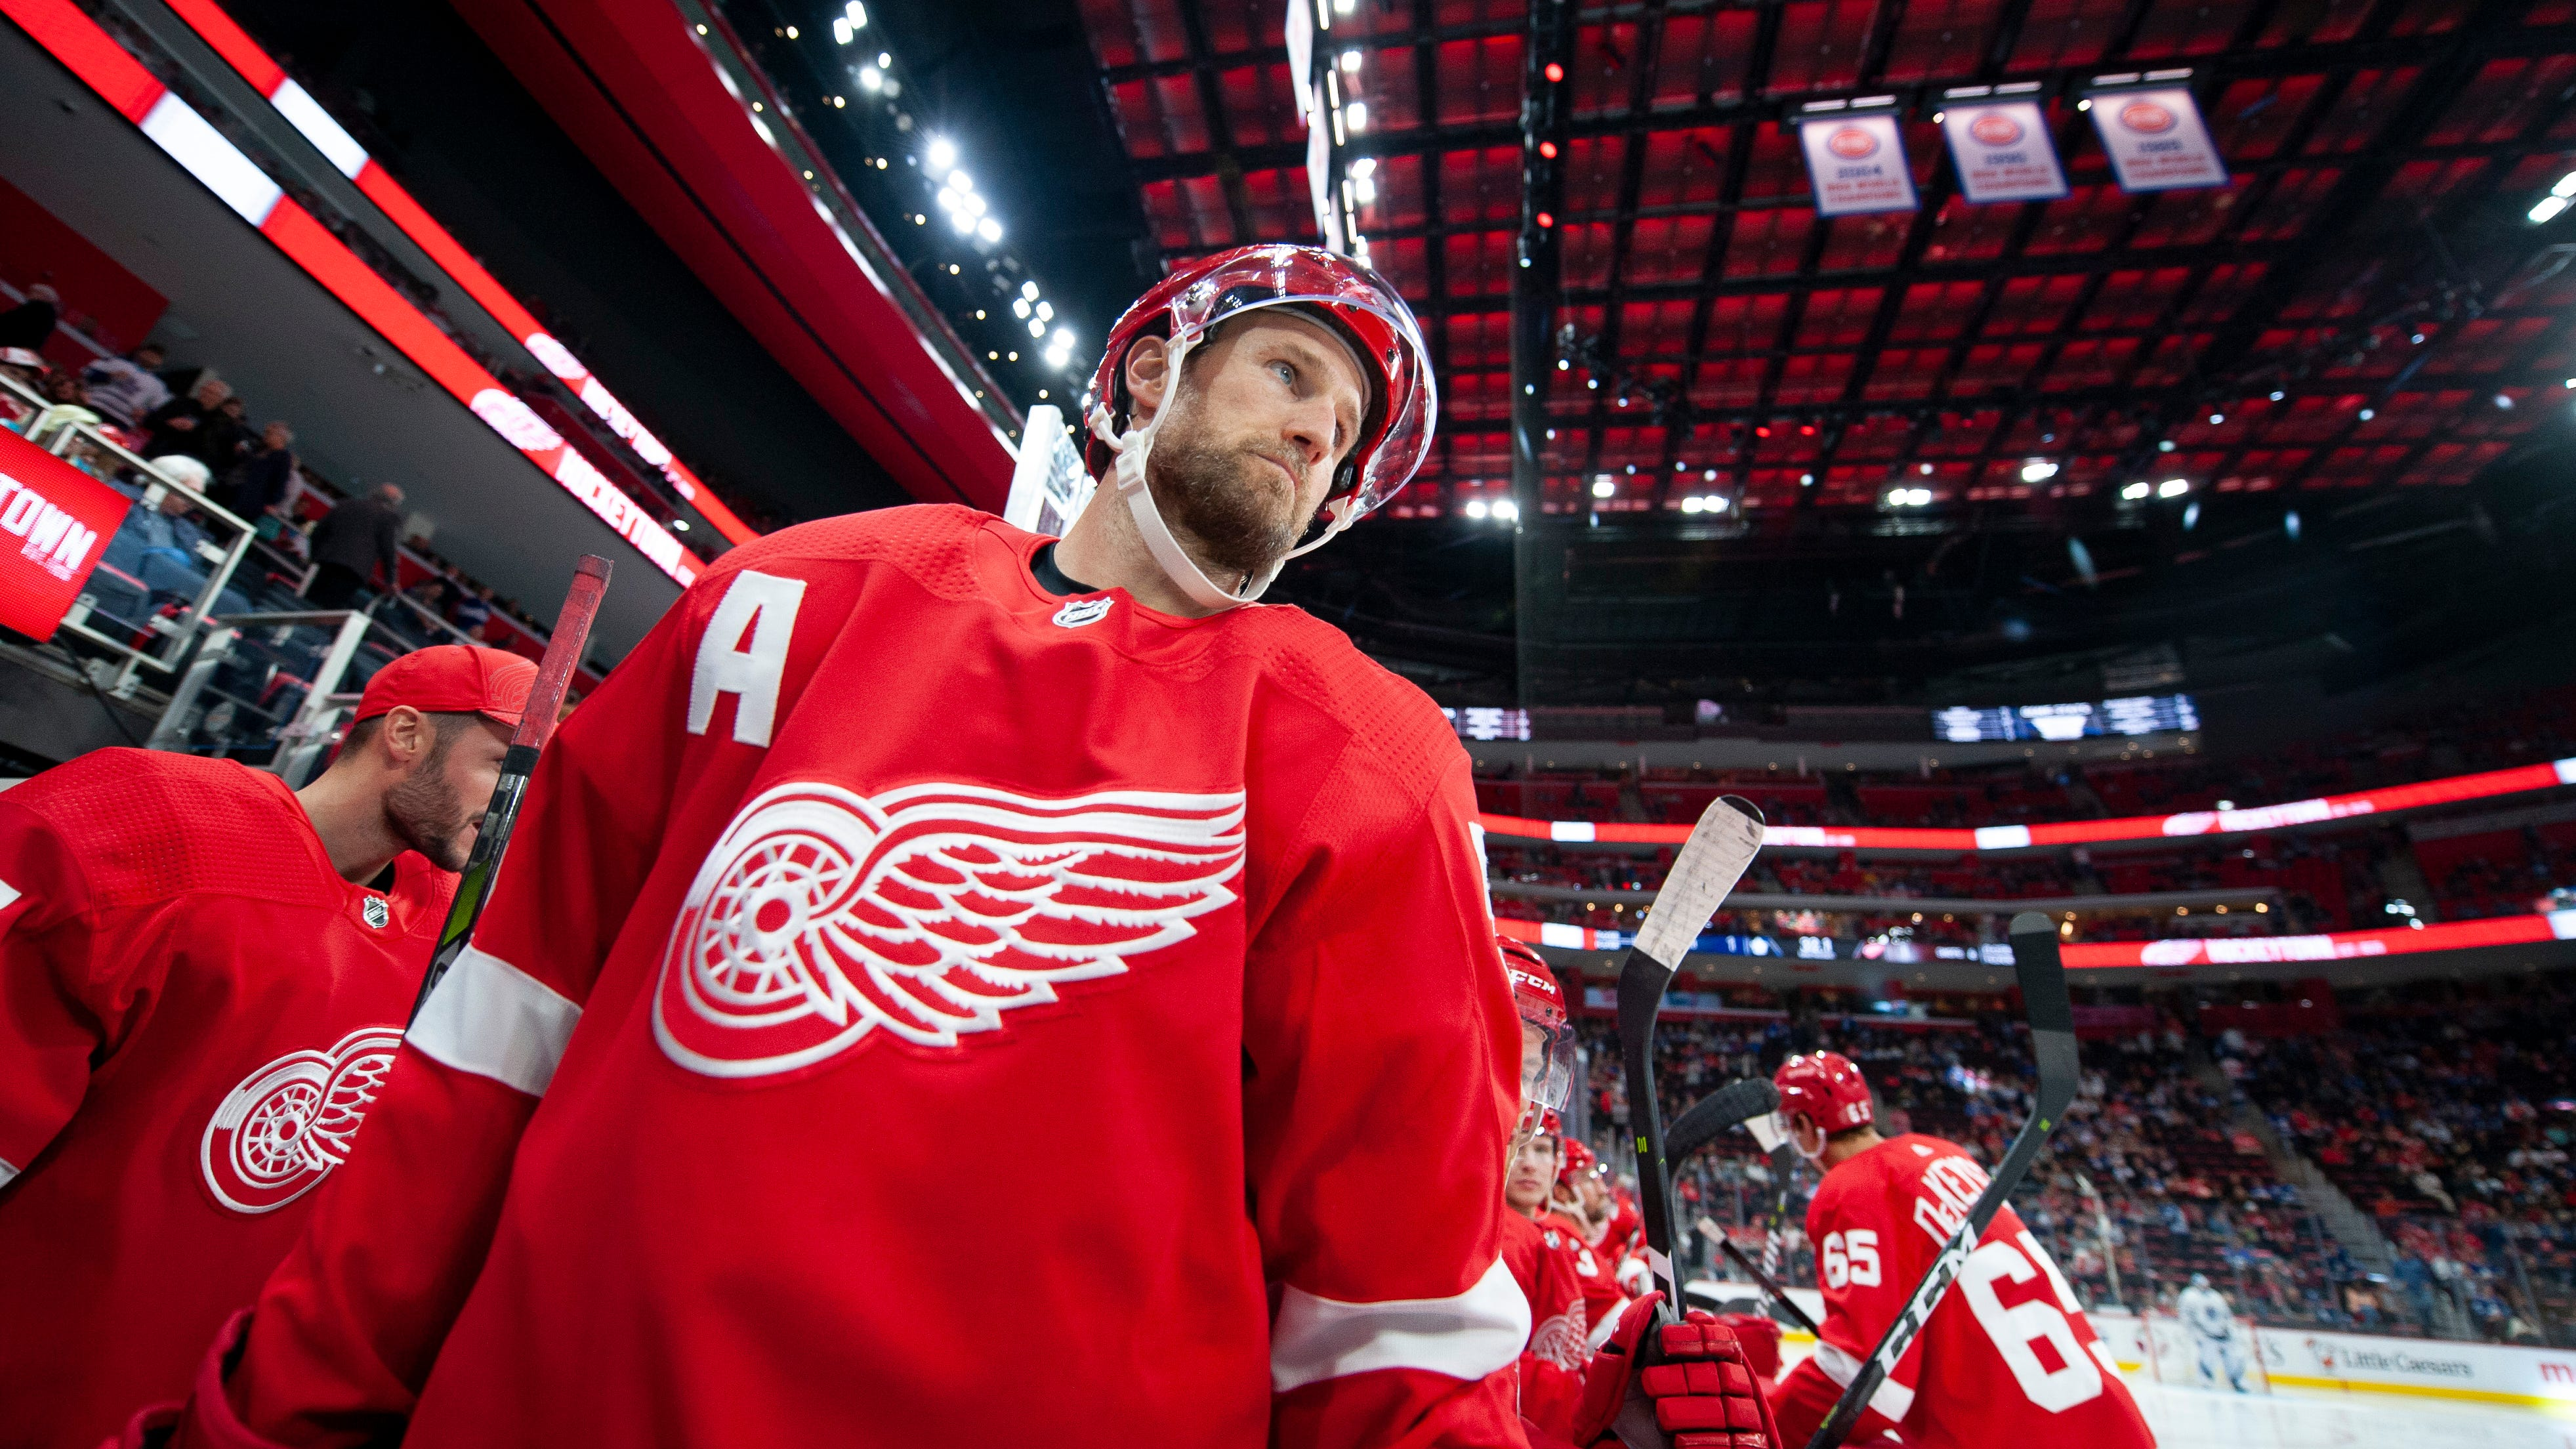 Niklas Kronwall plays it straight about rebuilding Red Wings, future